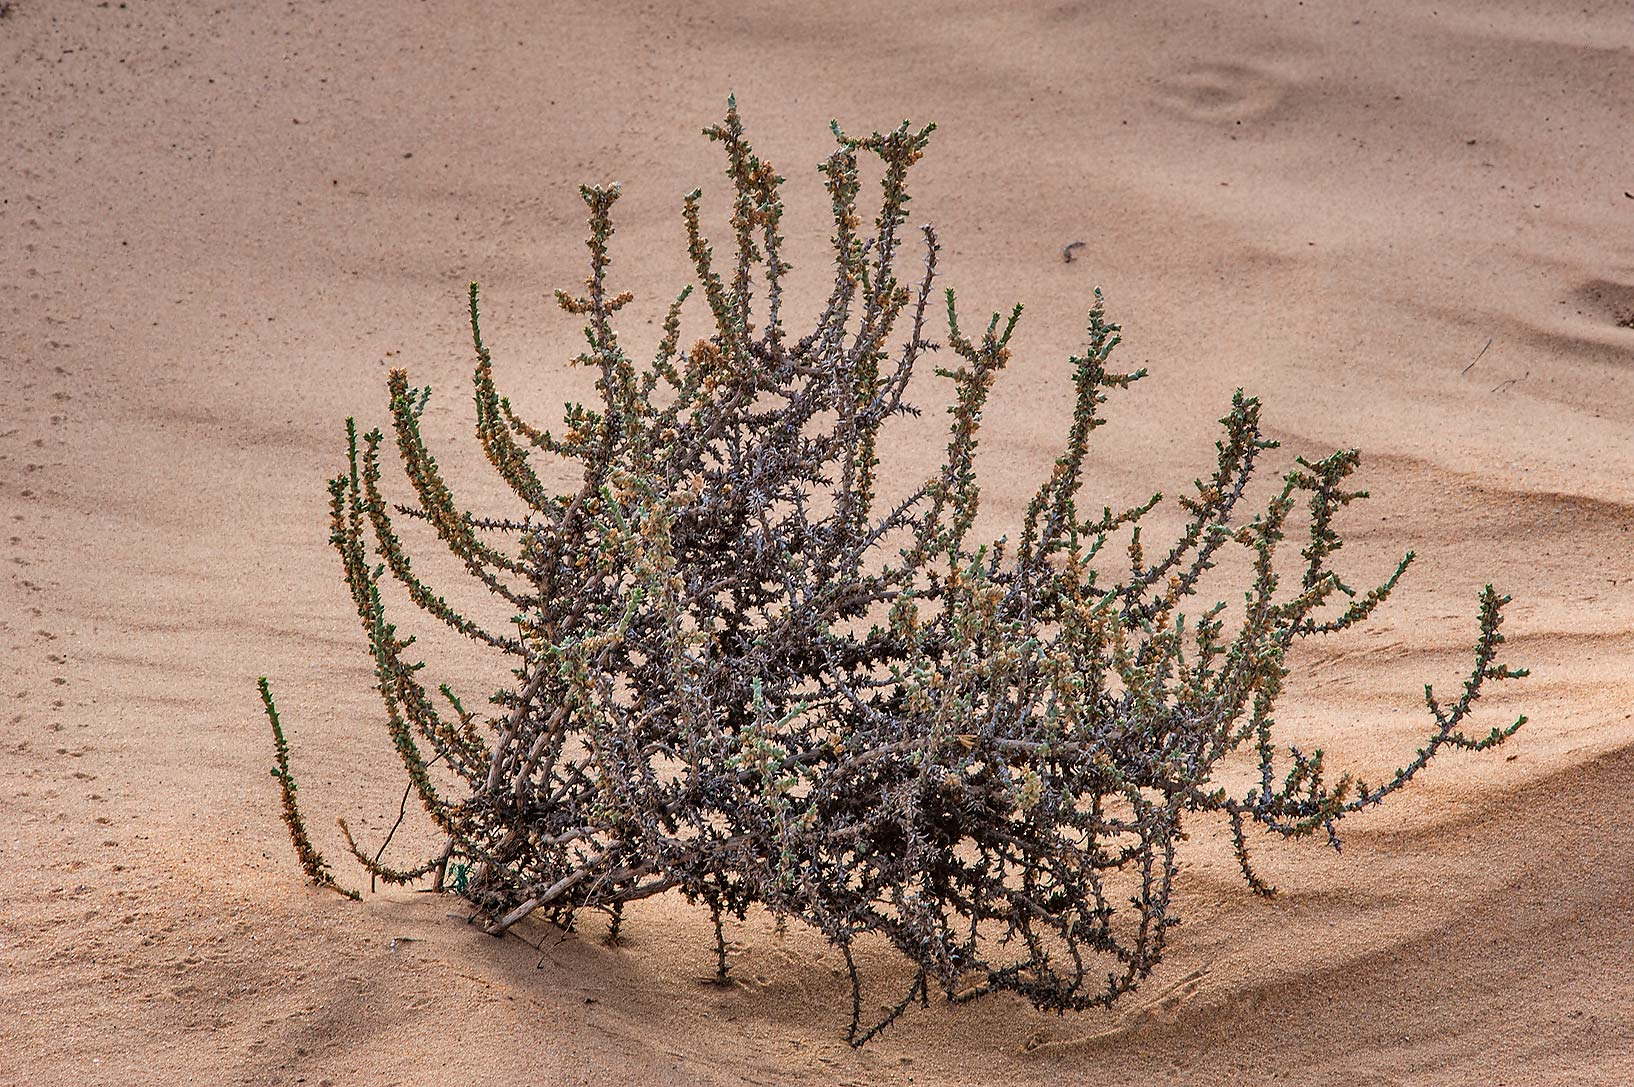 Old bush of Cornulaca monacantha in windblown...area of Rawdat Ekdaim. Southern Qatar